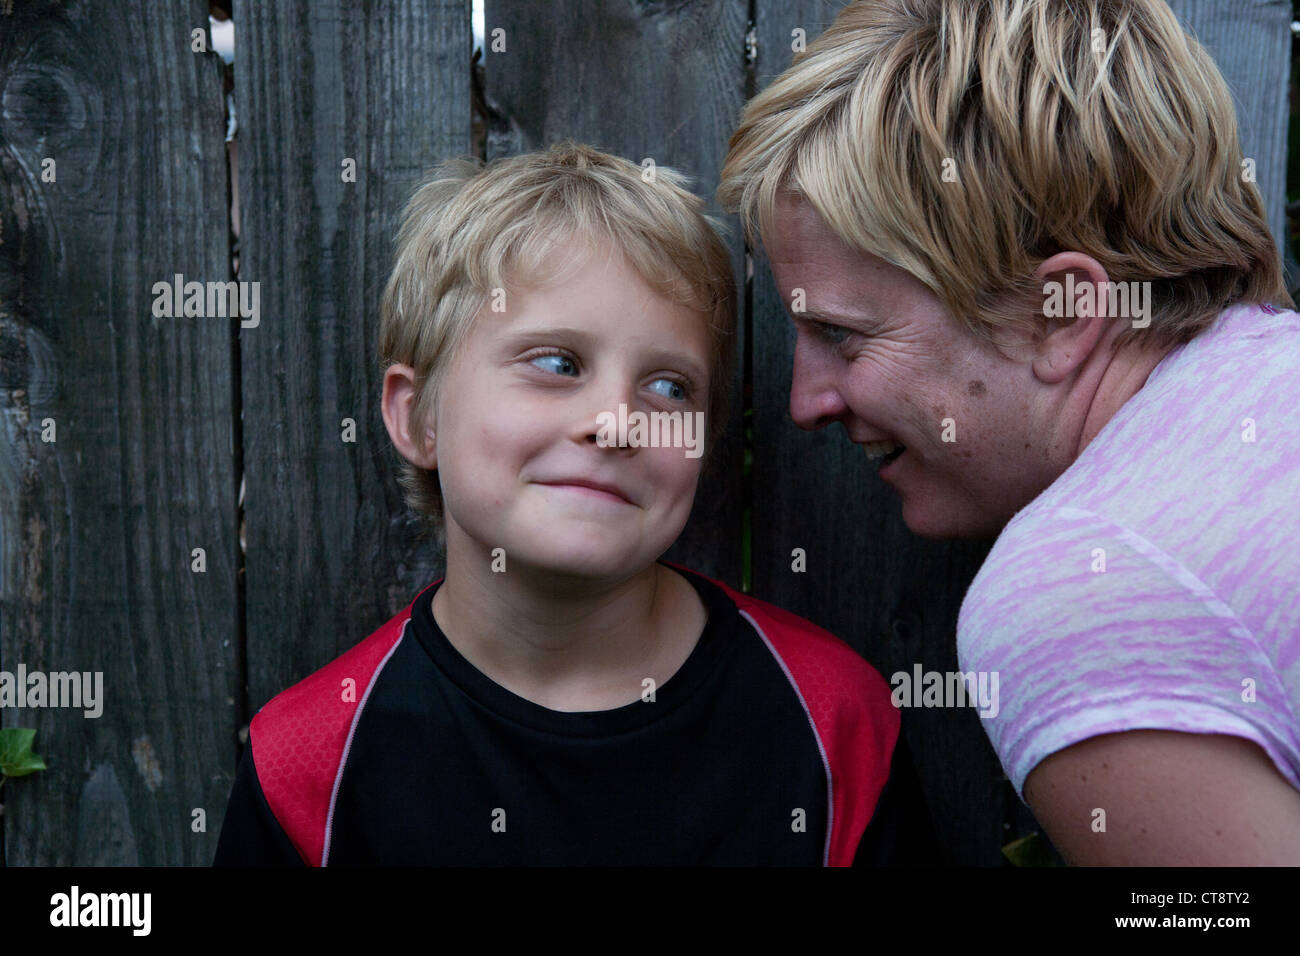 Mom whispering something in her son's ear and boy smiling. Stock Photo